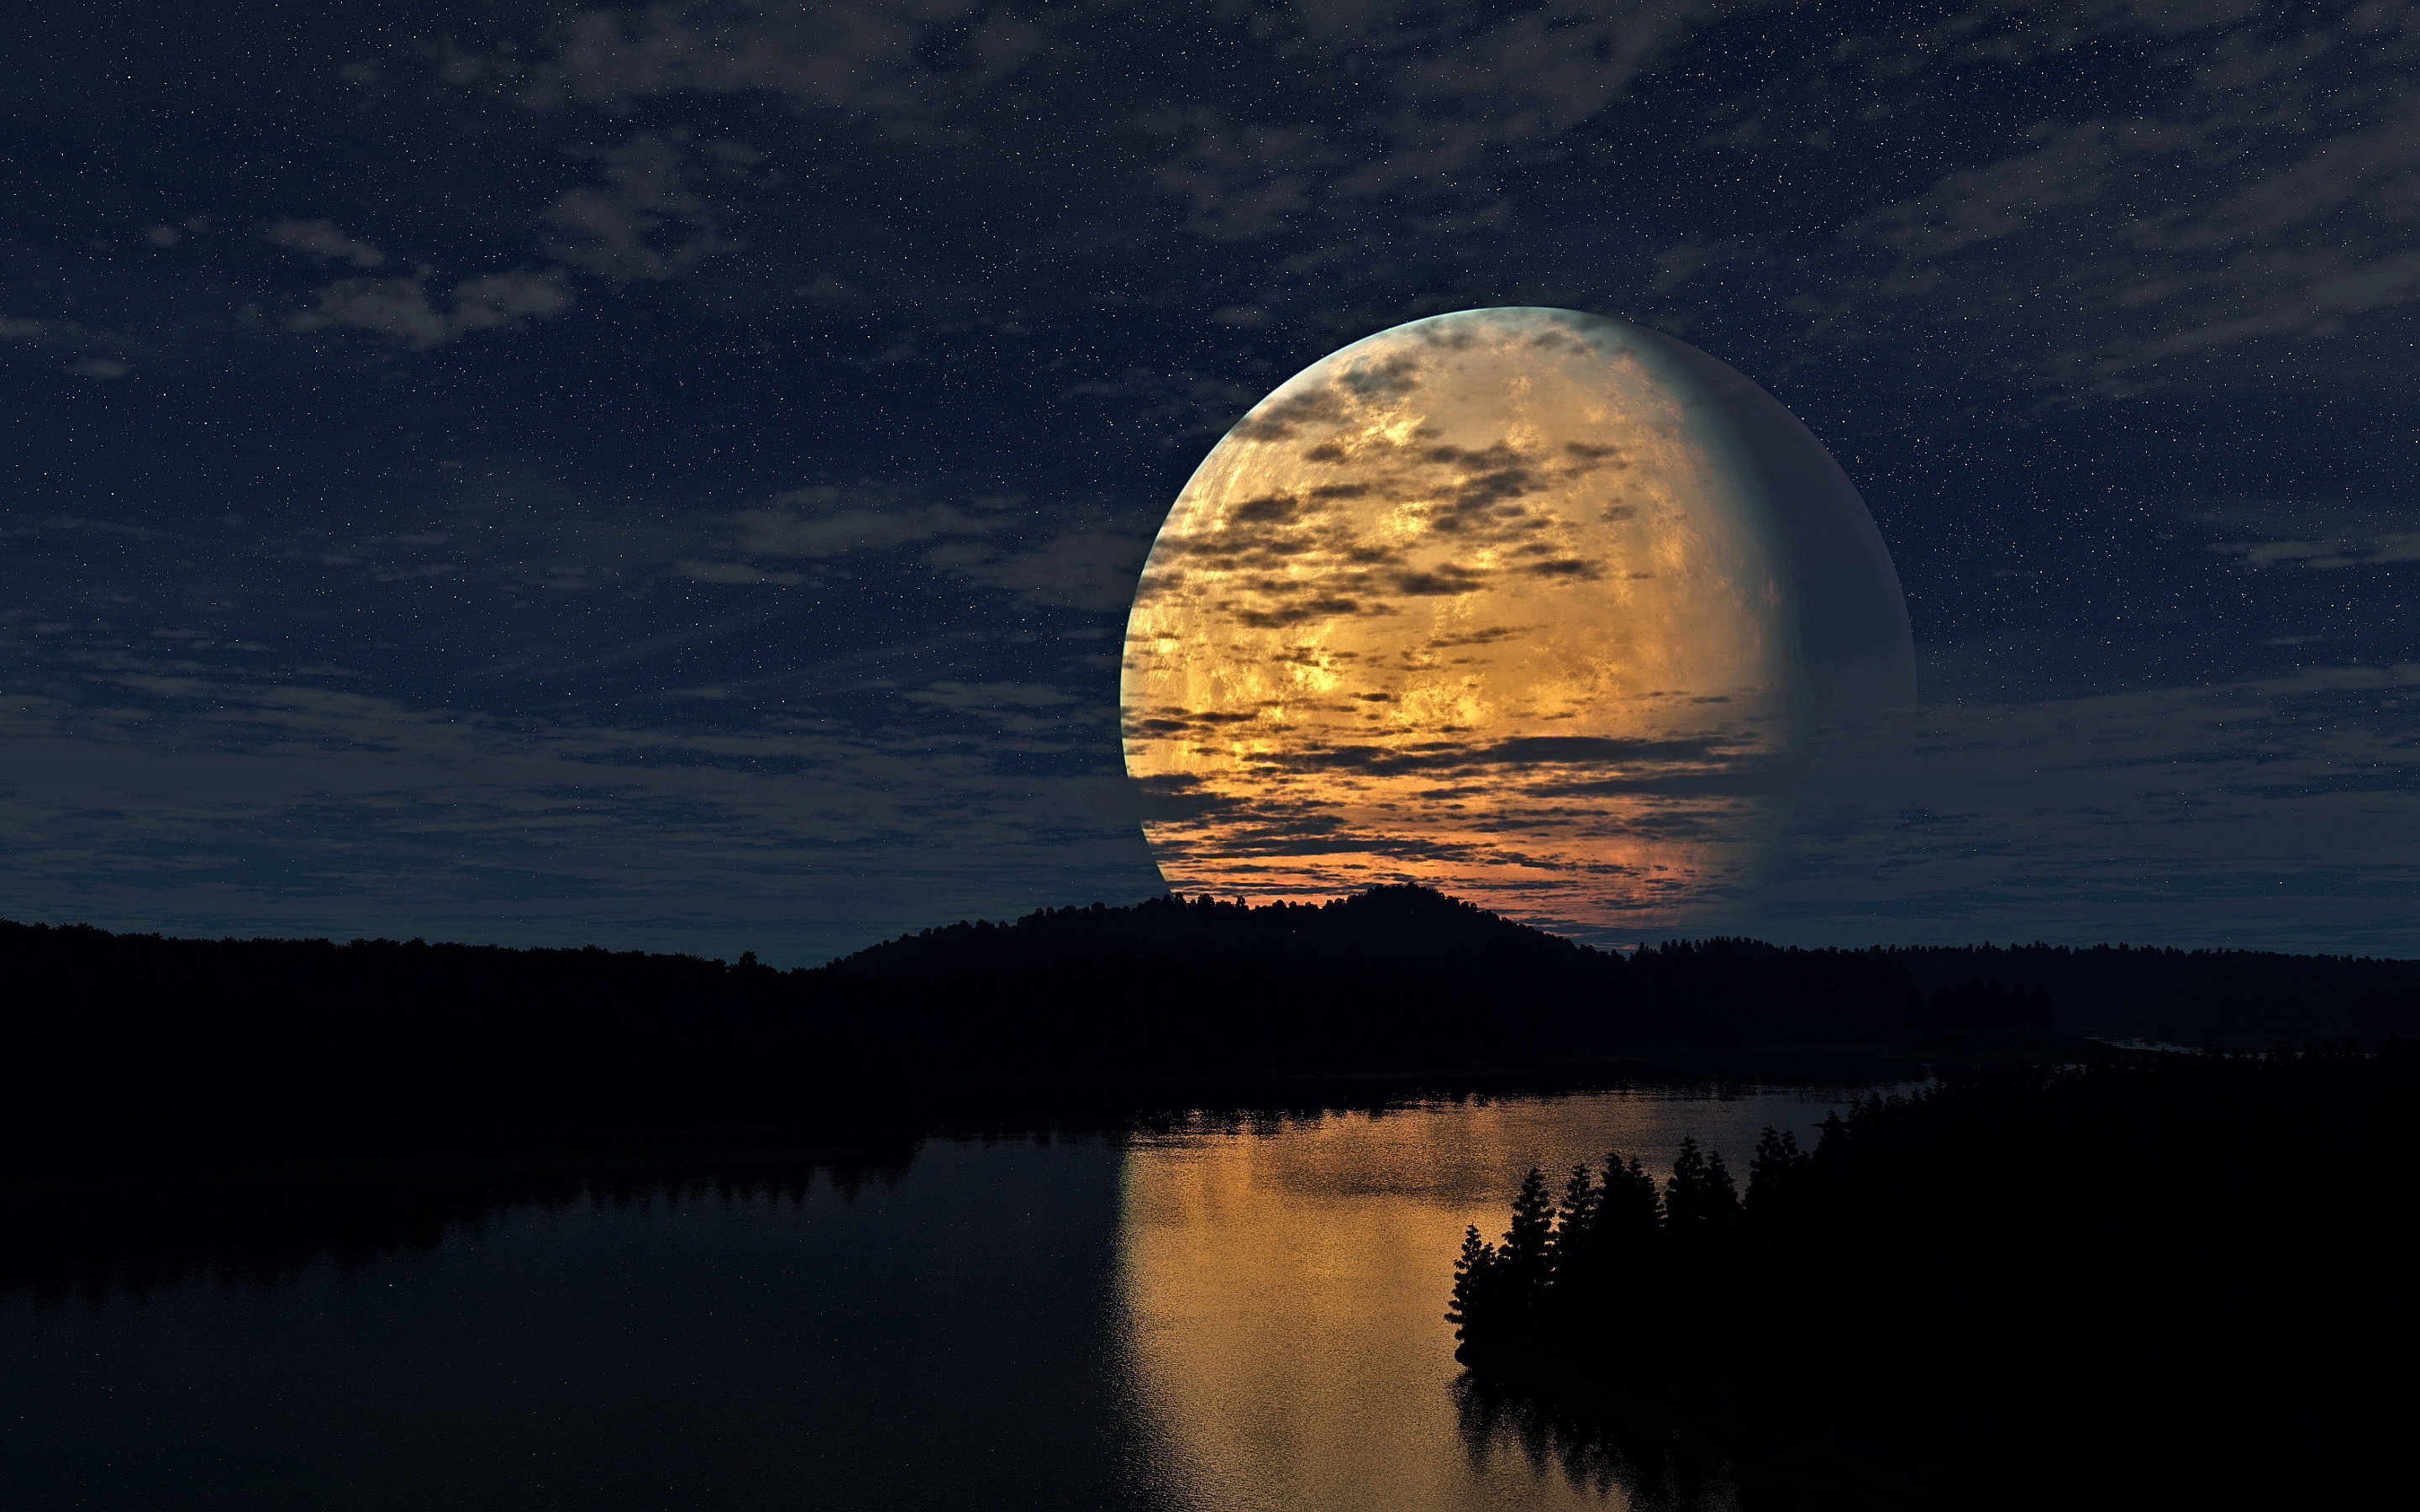 Night moon river scenery